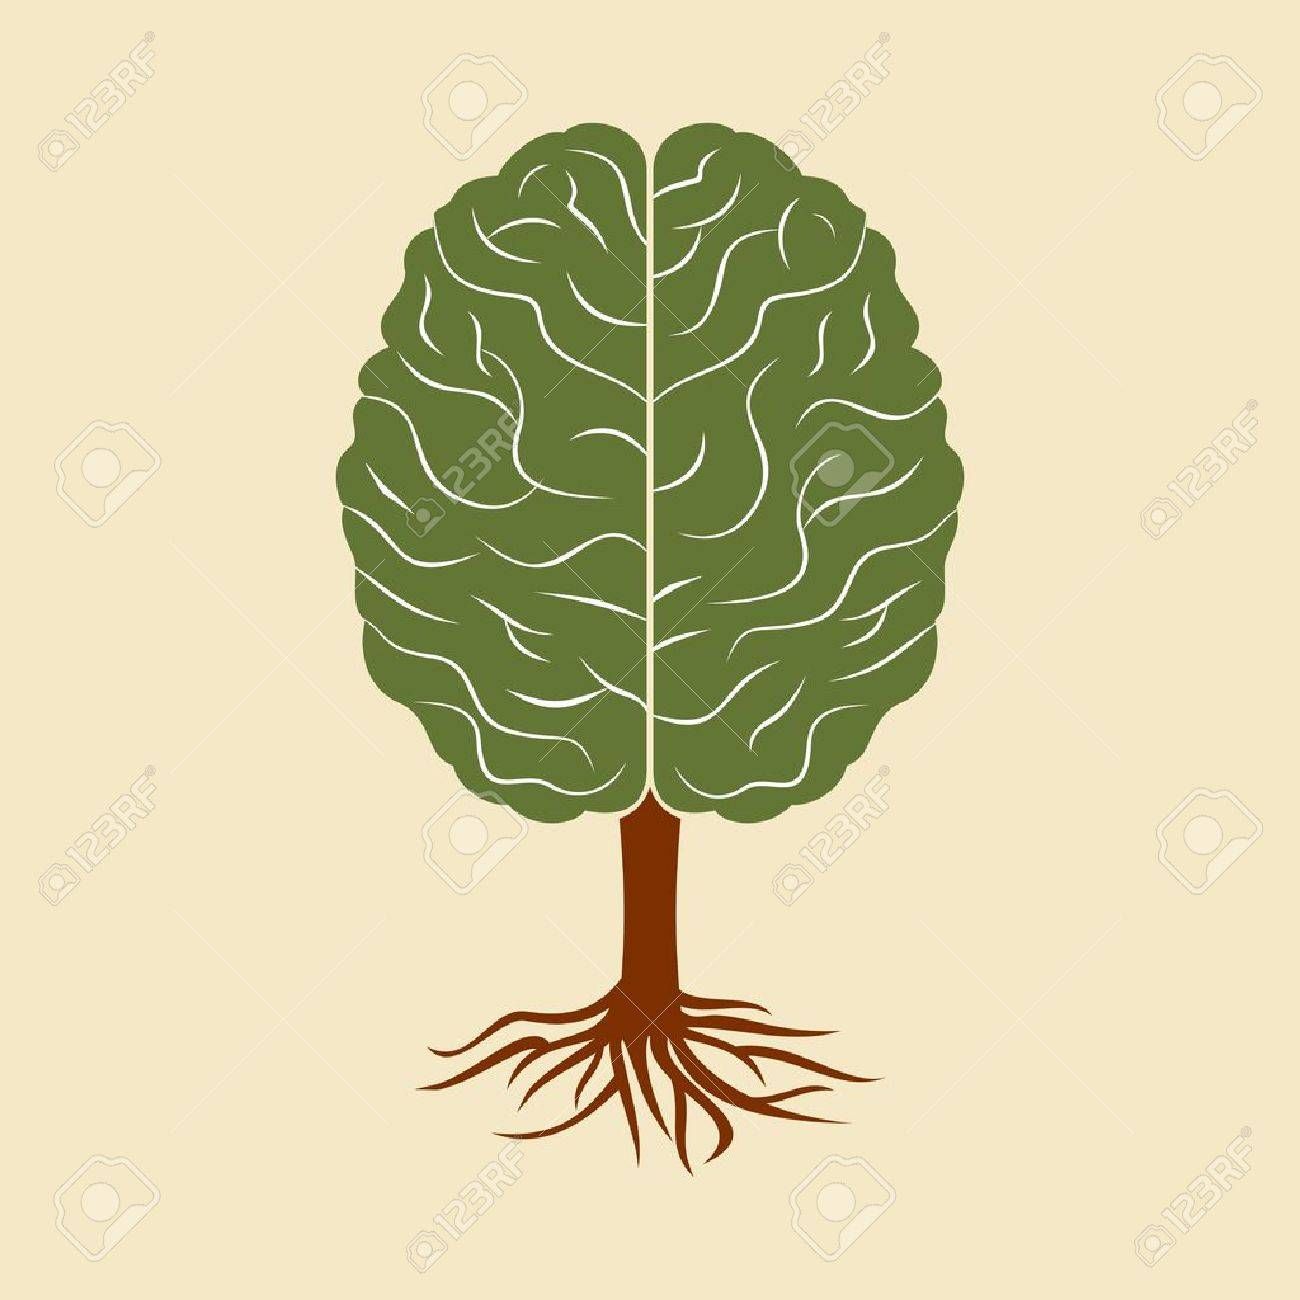 a brain growing in the shape of tree Stock Vector - 17730628